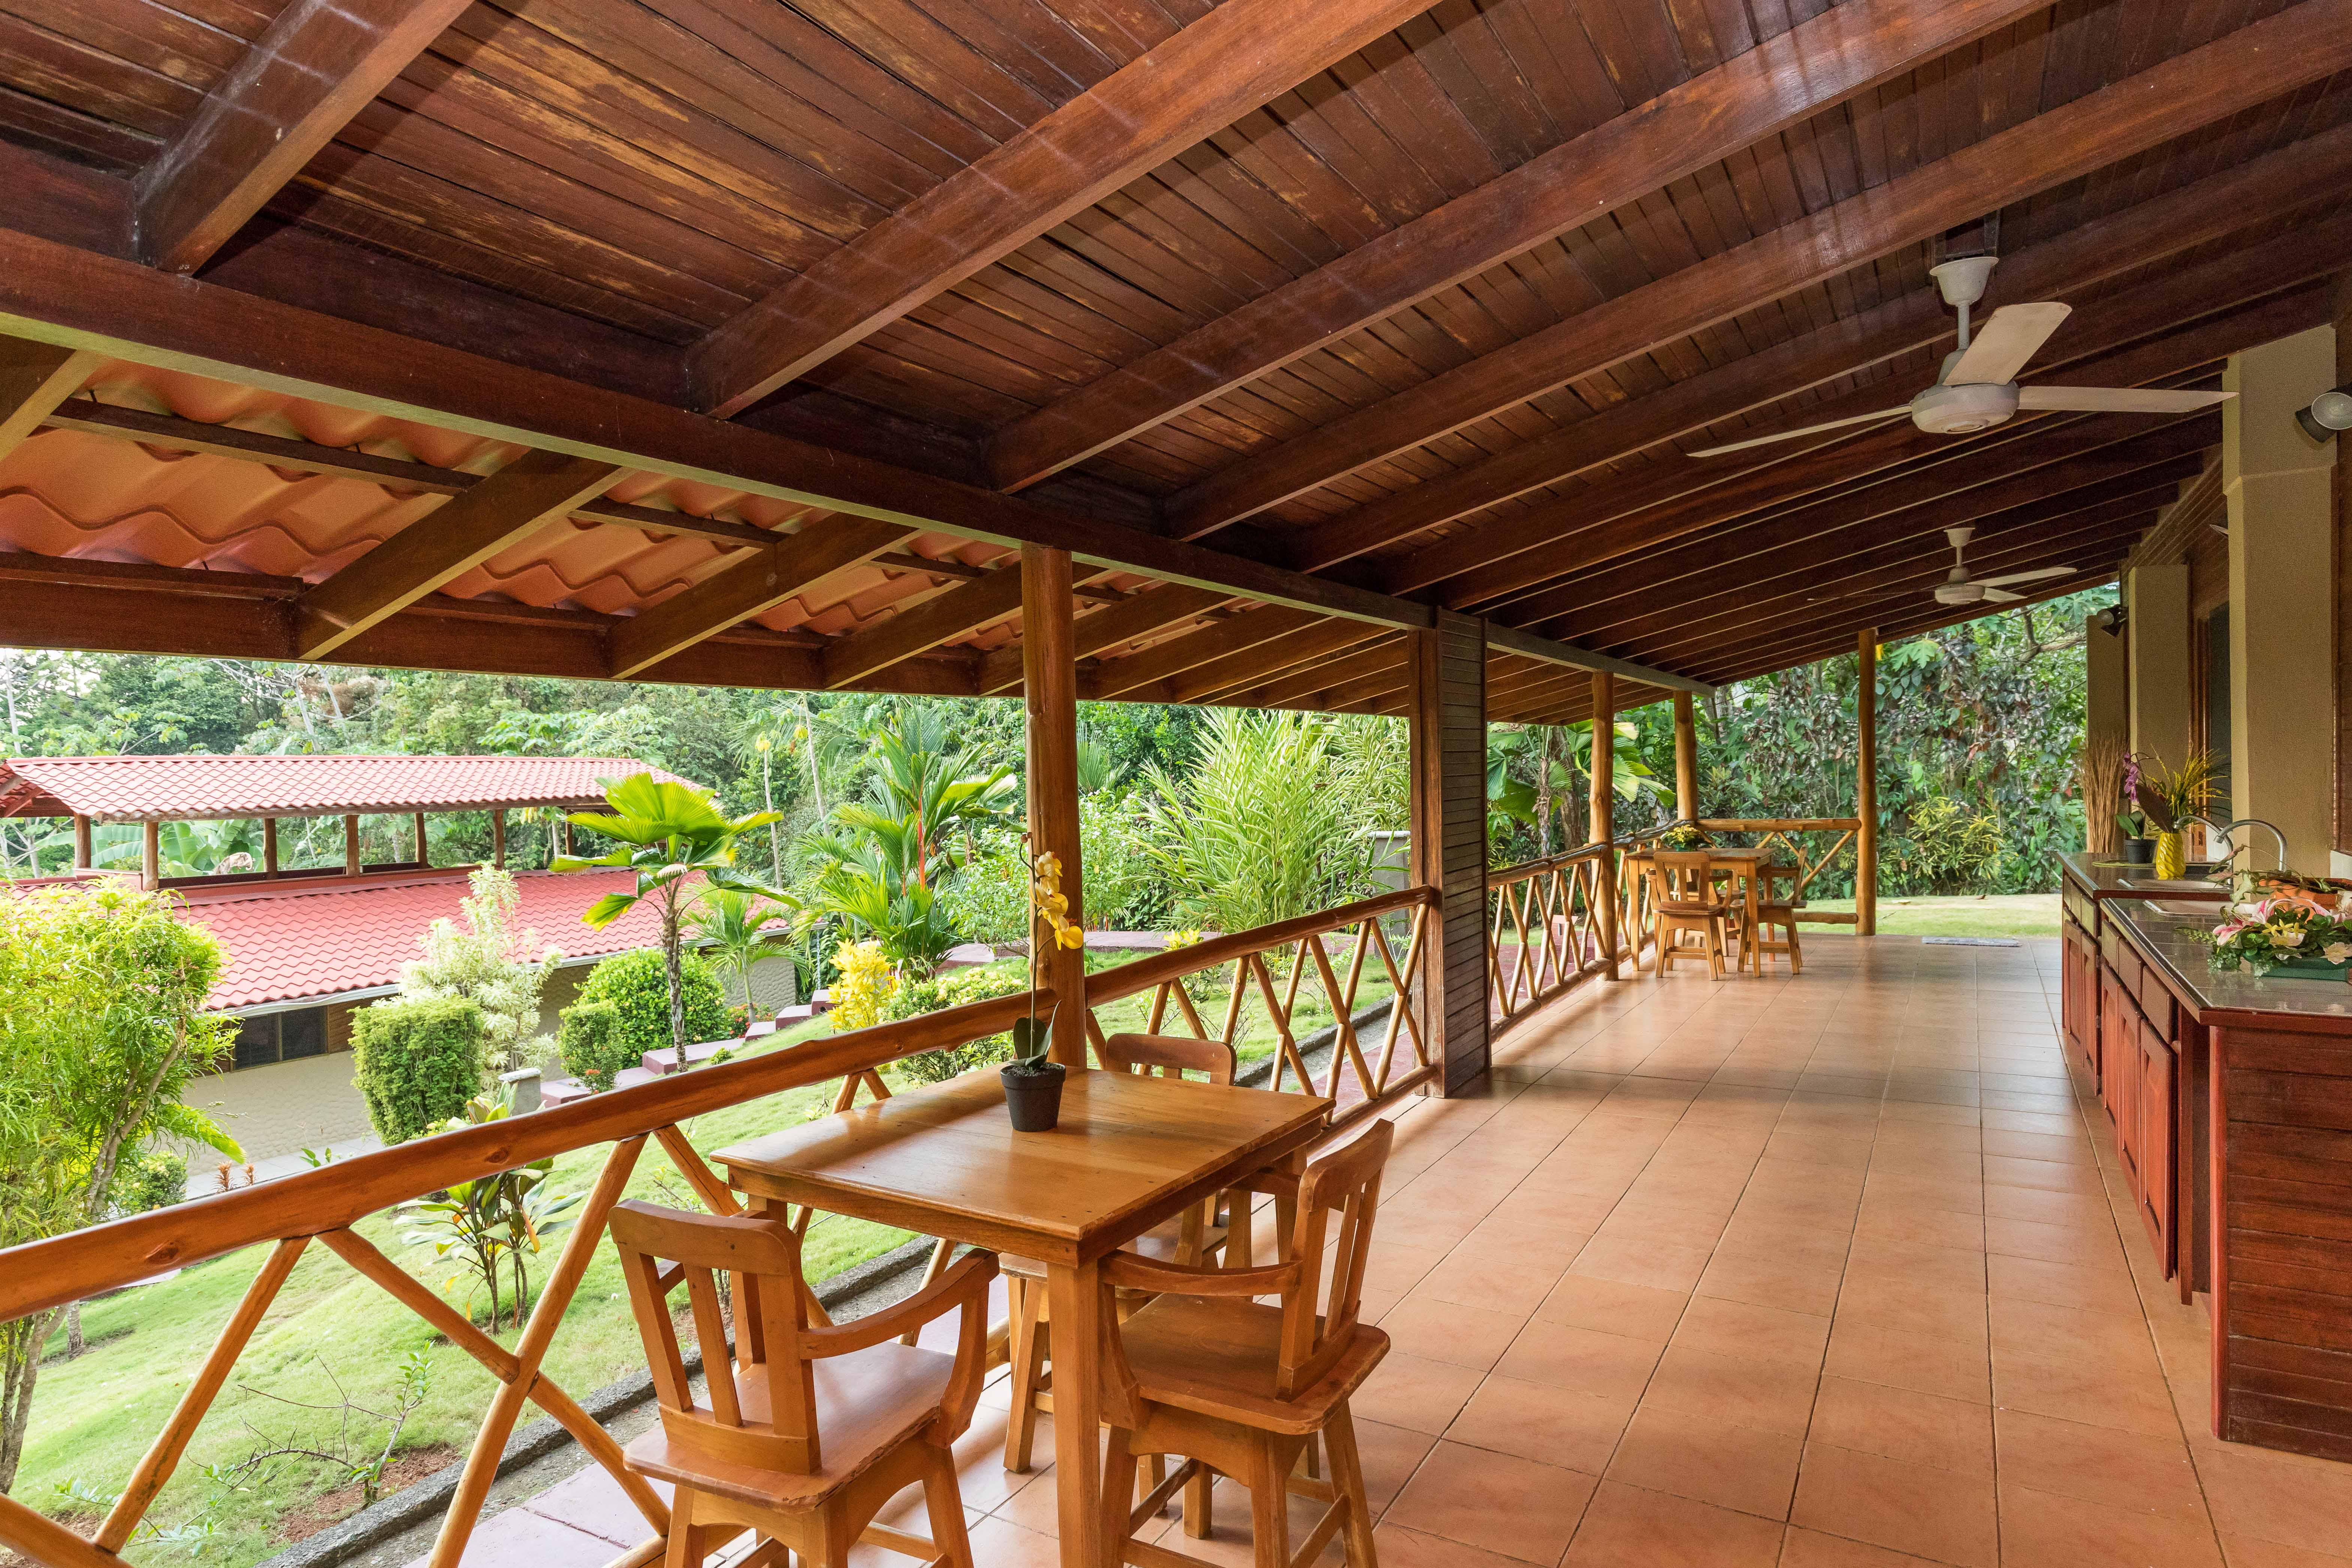 6 ACRES - 4 Bedroom, Pool and Jacuzzi, Ocean and Jungle View With Trails!!!!